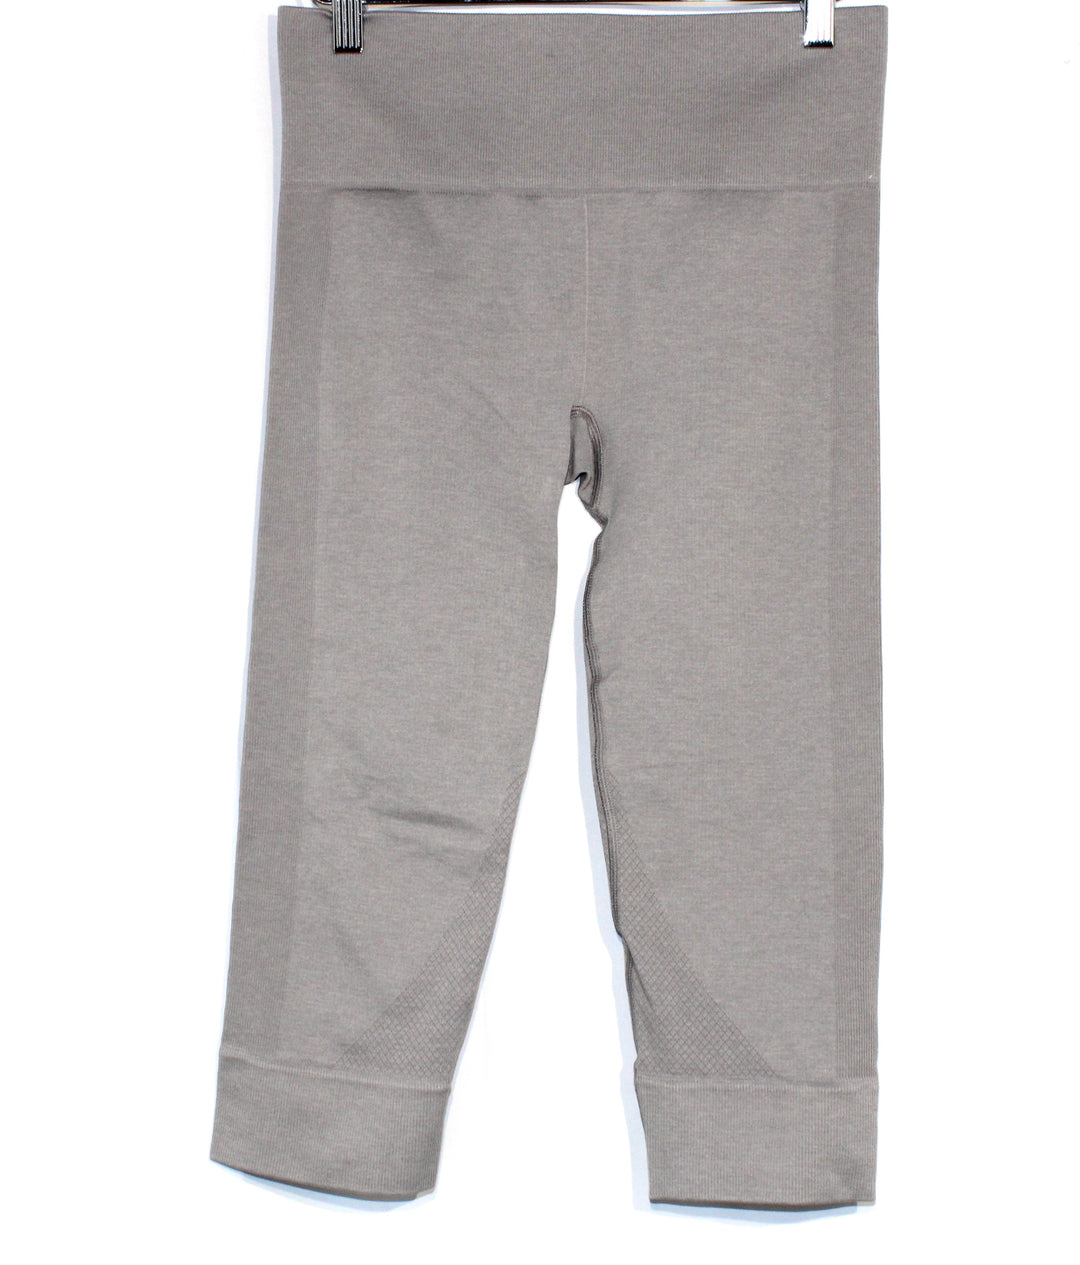 Primary Photo - <P>BRAND: LULULEMON <BR>STYLE: ATHLETIC CAPRIS <BR>COLOR: GREY <BR>SIZE: S<BR>SKU: 262-26275-64153<BR><BR>DESIGNER FINAL</P> <P>SIZE TAG MISSING AS IS</P>